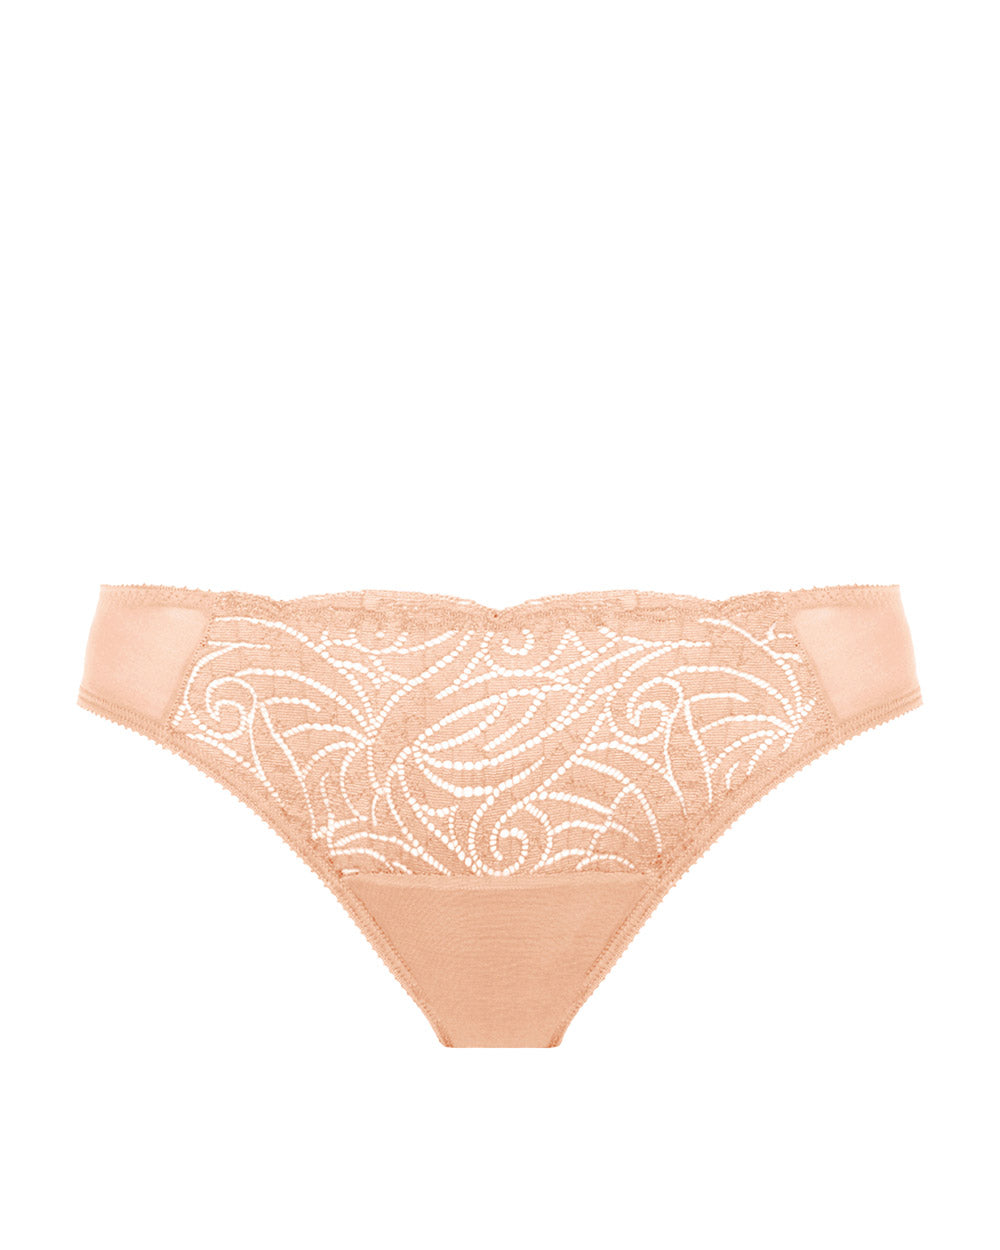 Verity Bikini Brief